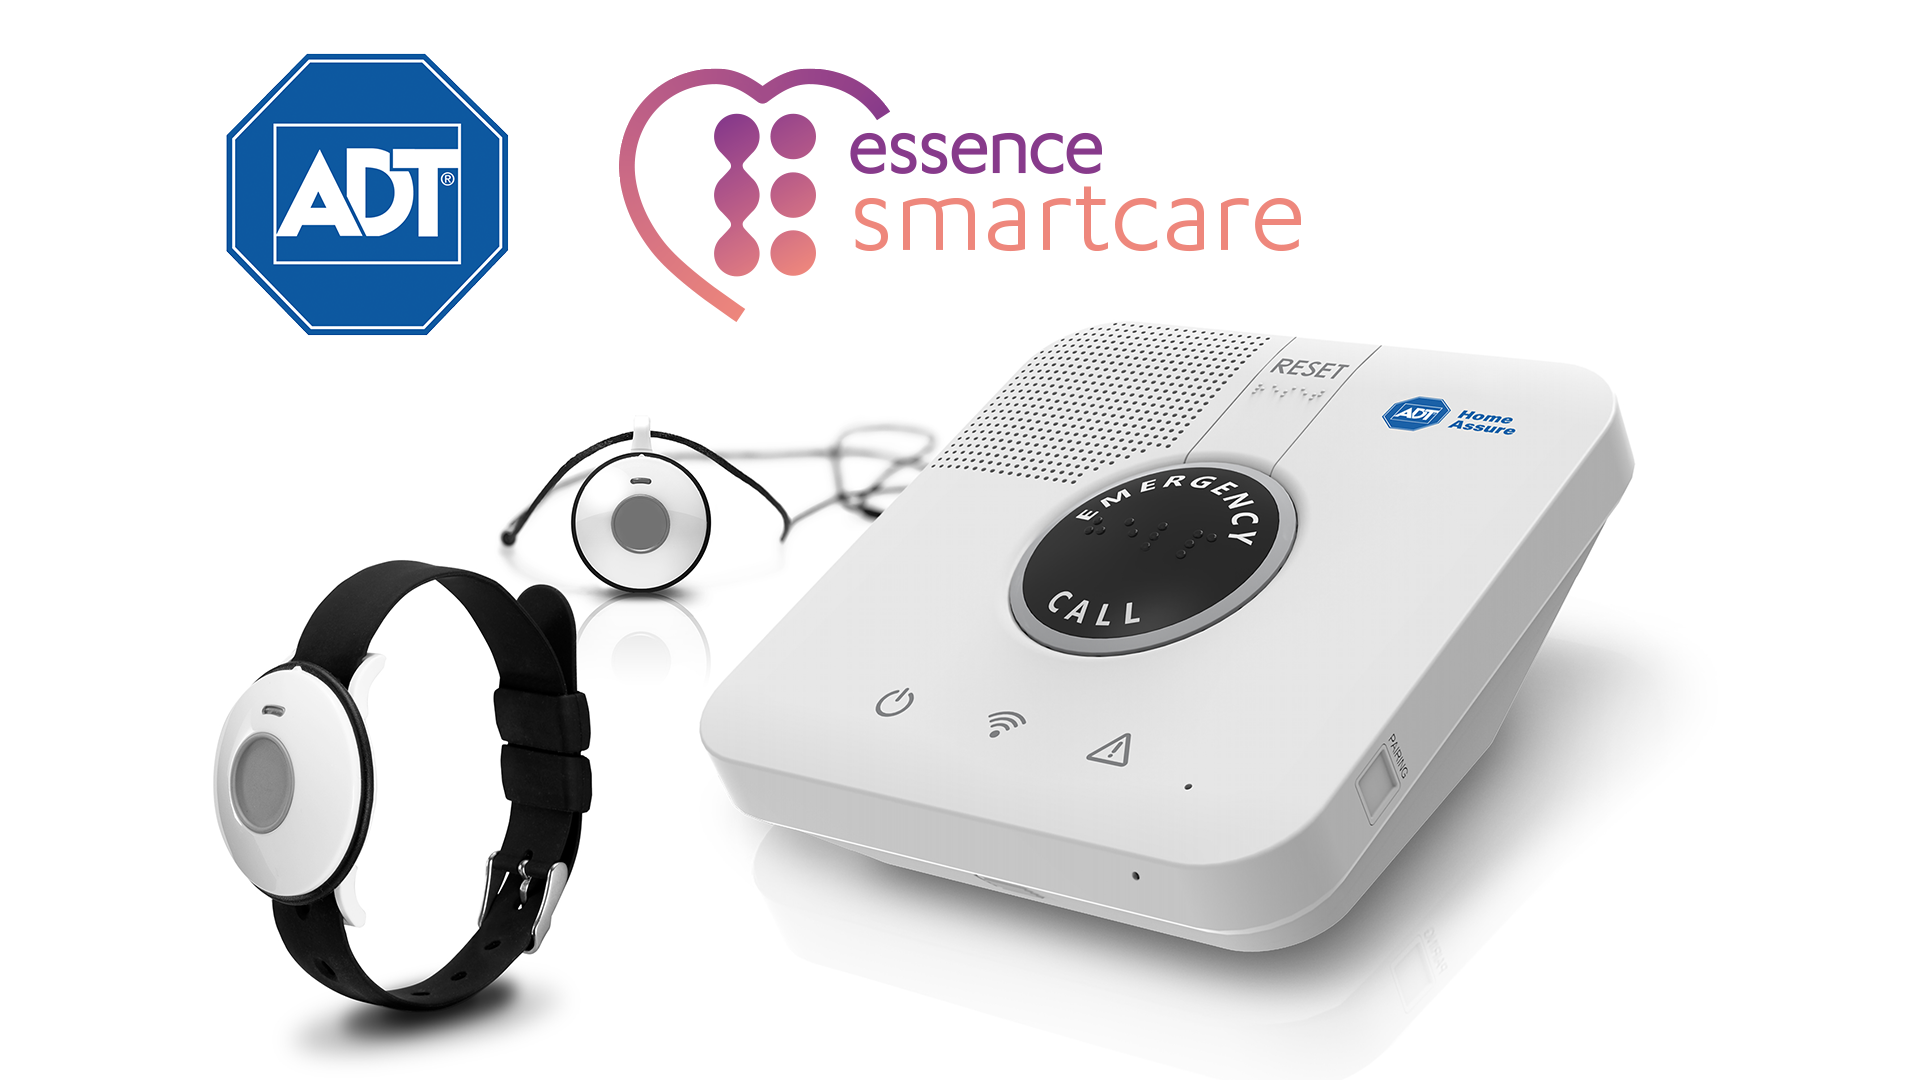 Essence Smartcare and ADT partnership